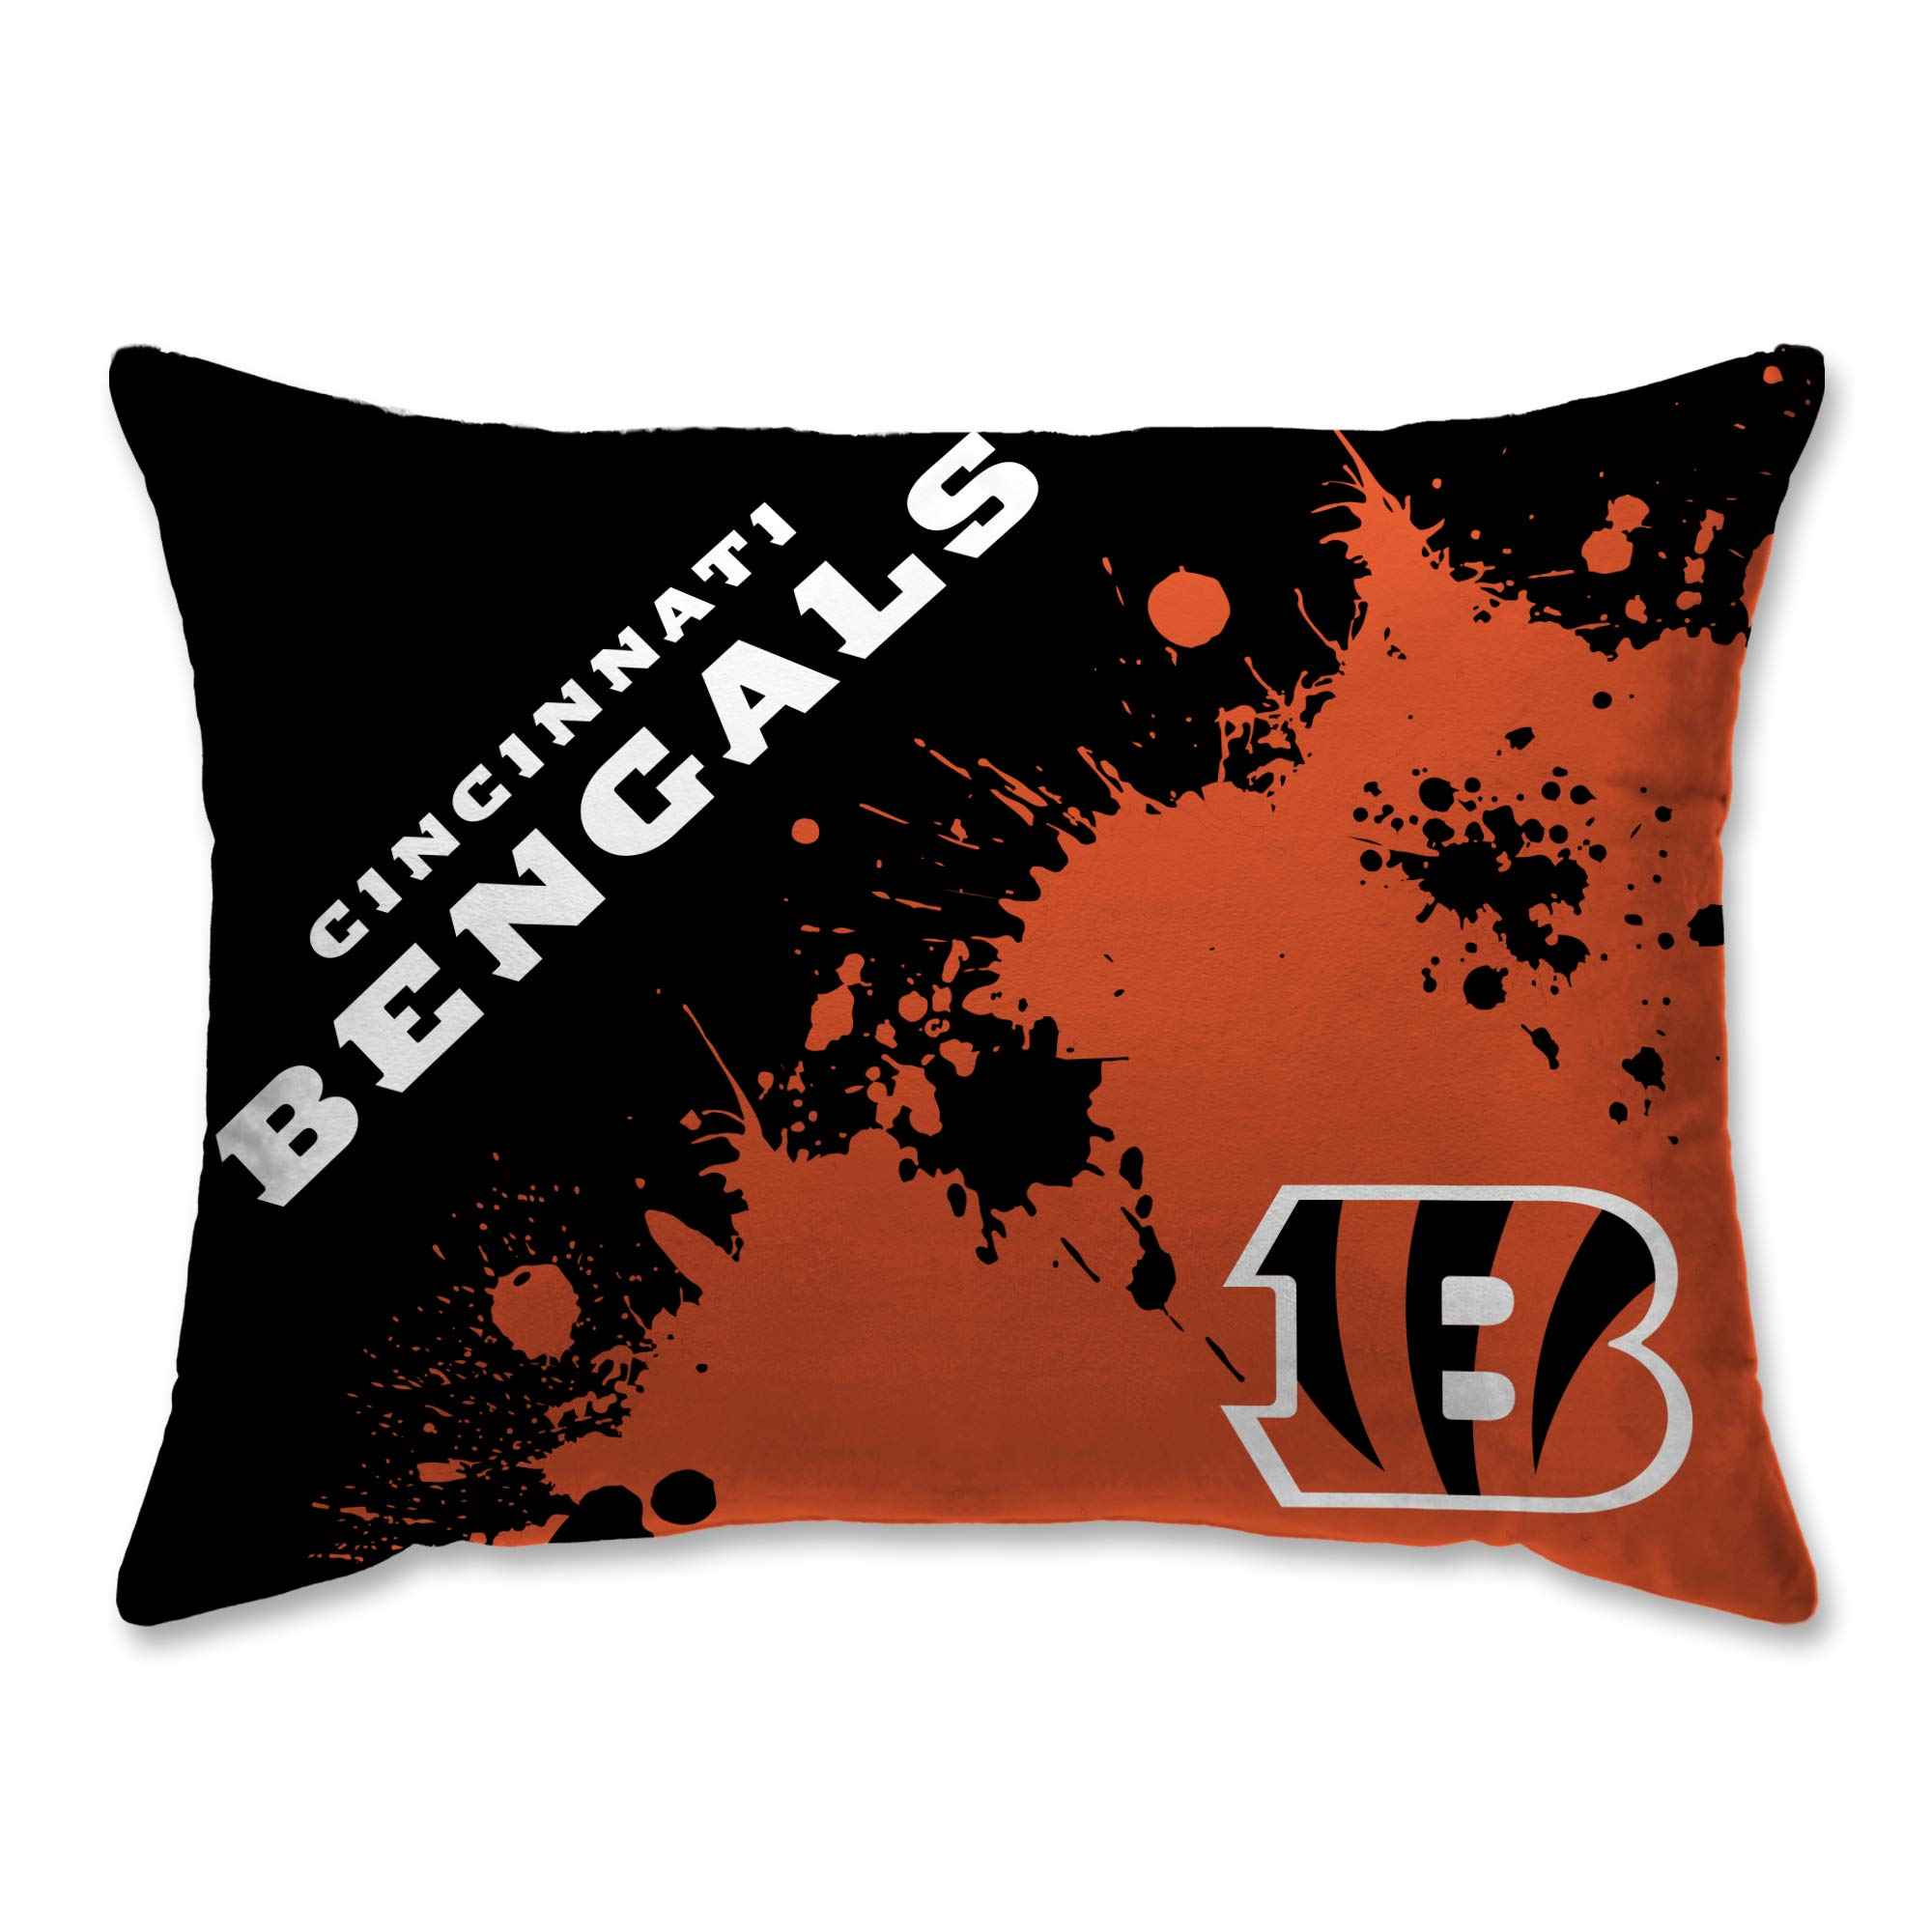 Cincinnati Bengals Splatter 20'' x 26'' Plush Bed Pillow, Set of 2#989503275 by Pegasus Sports